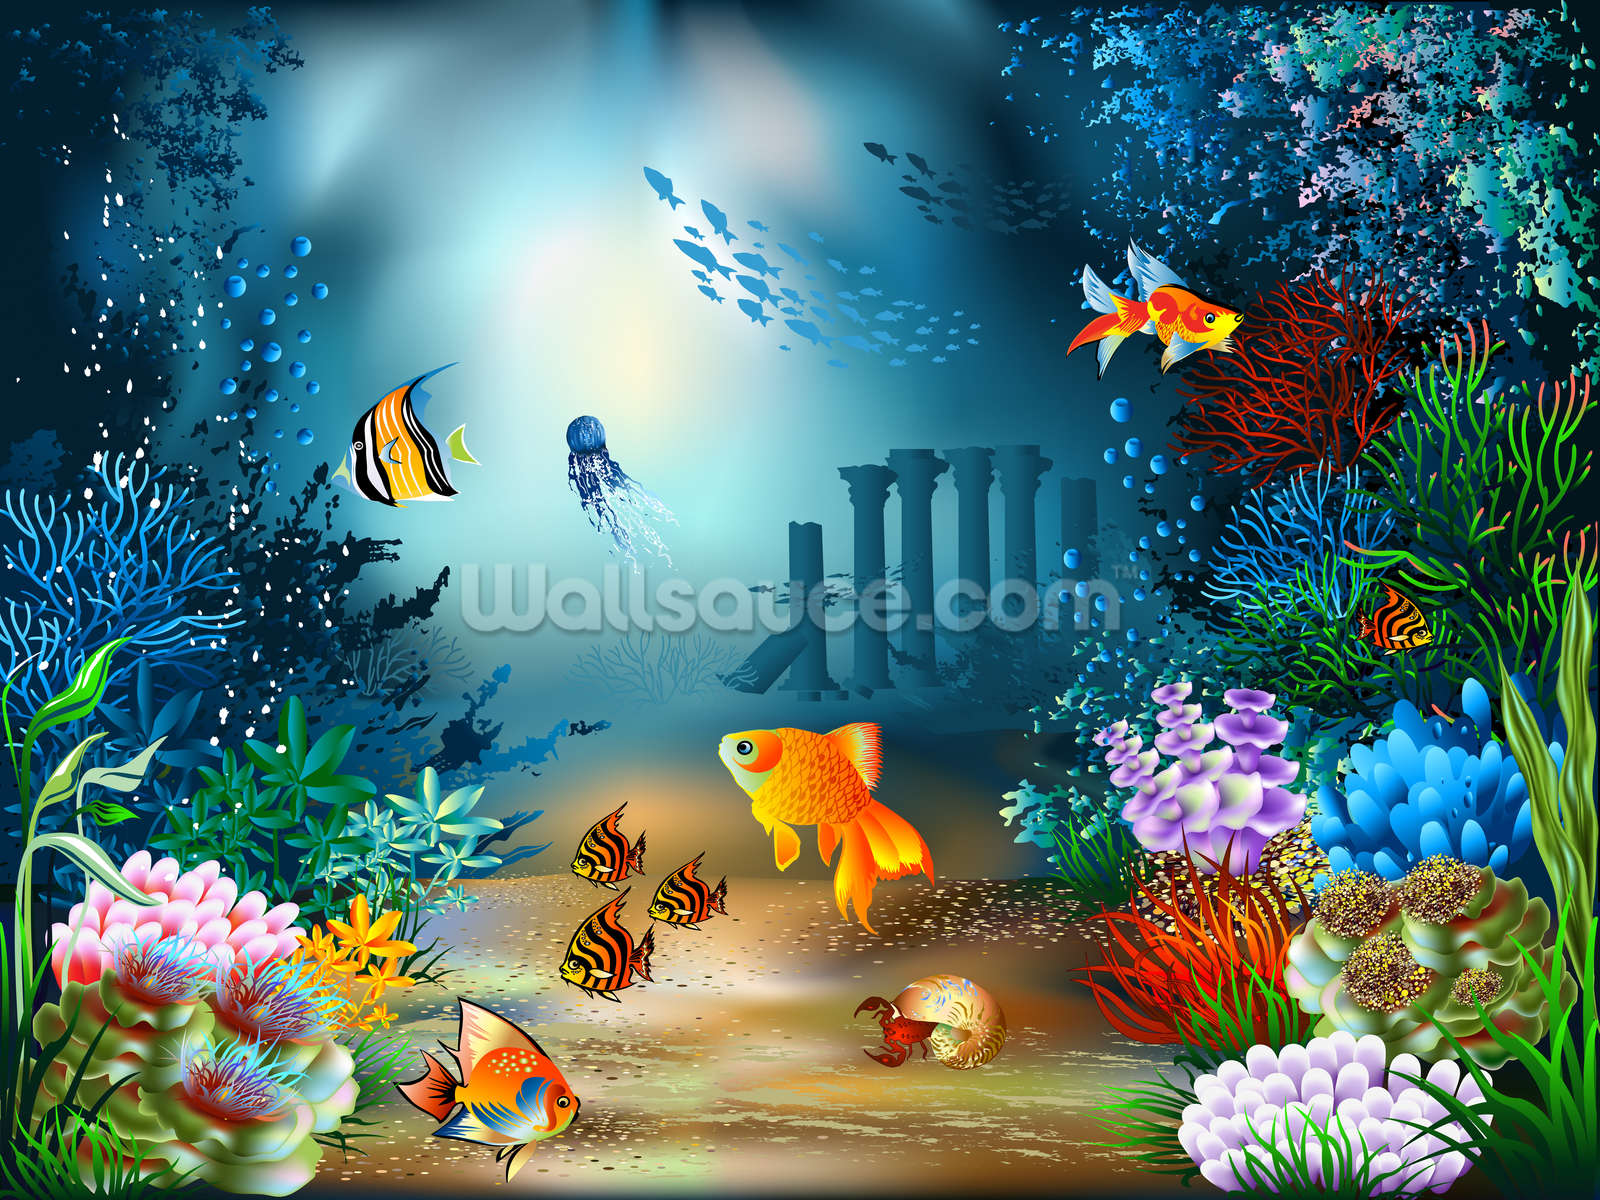 Underwater world wallpaper wall mural wallsauce usa for Mural wallpaper